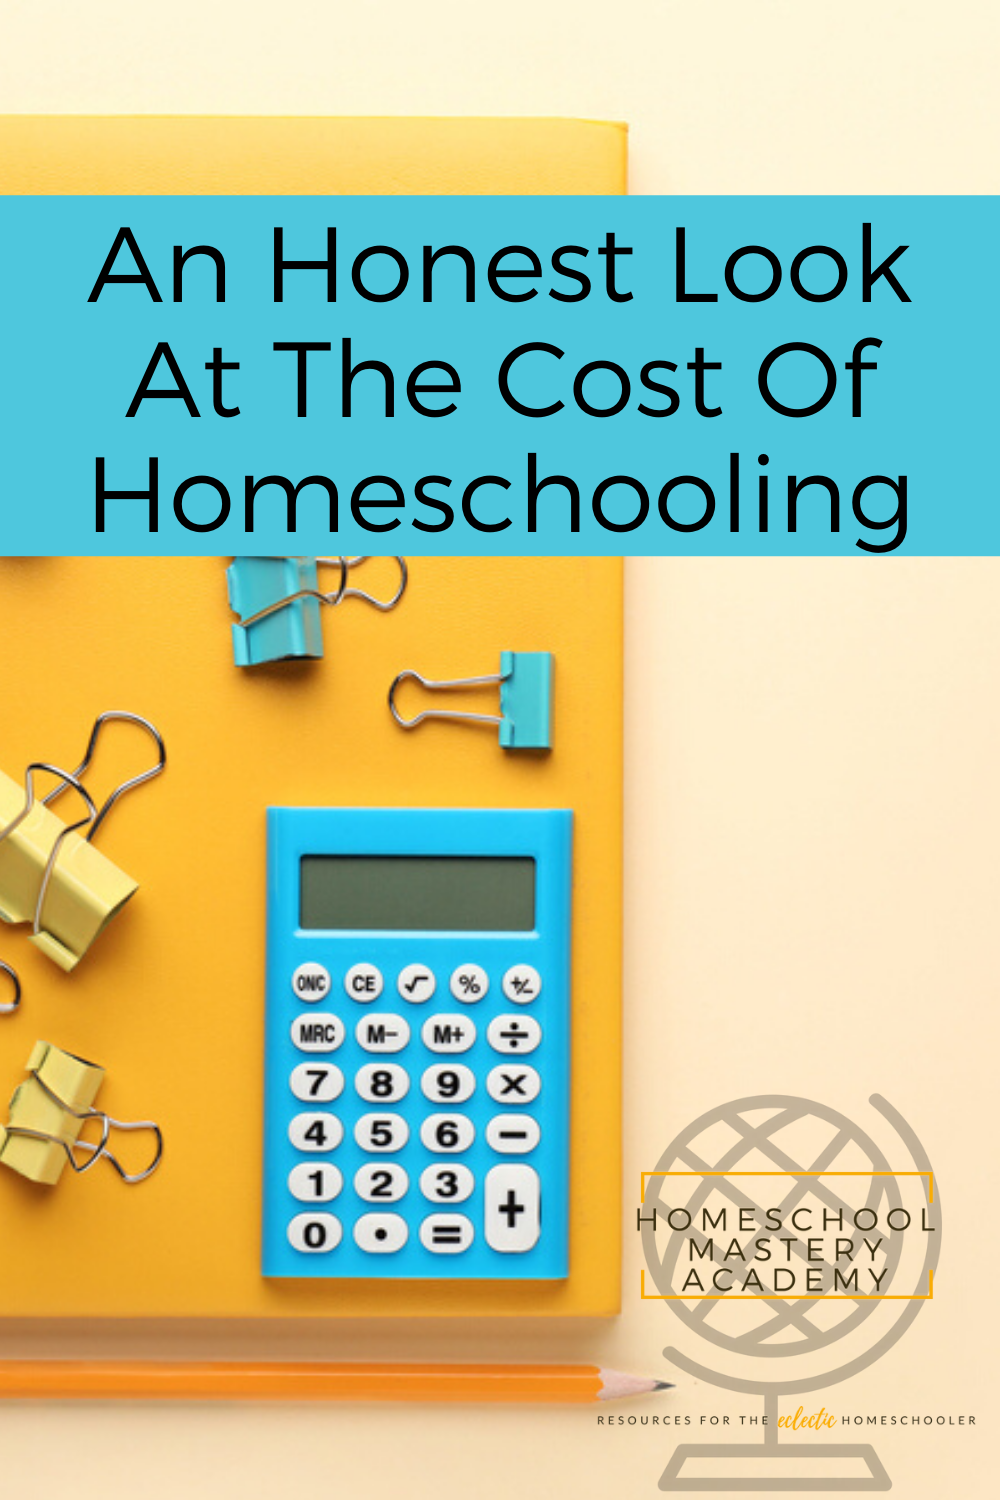 Cost Of Homeschooling